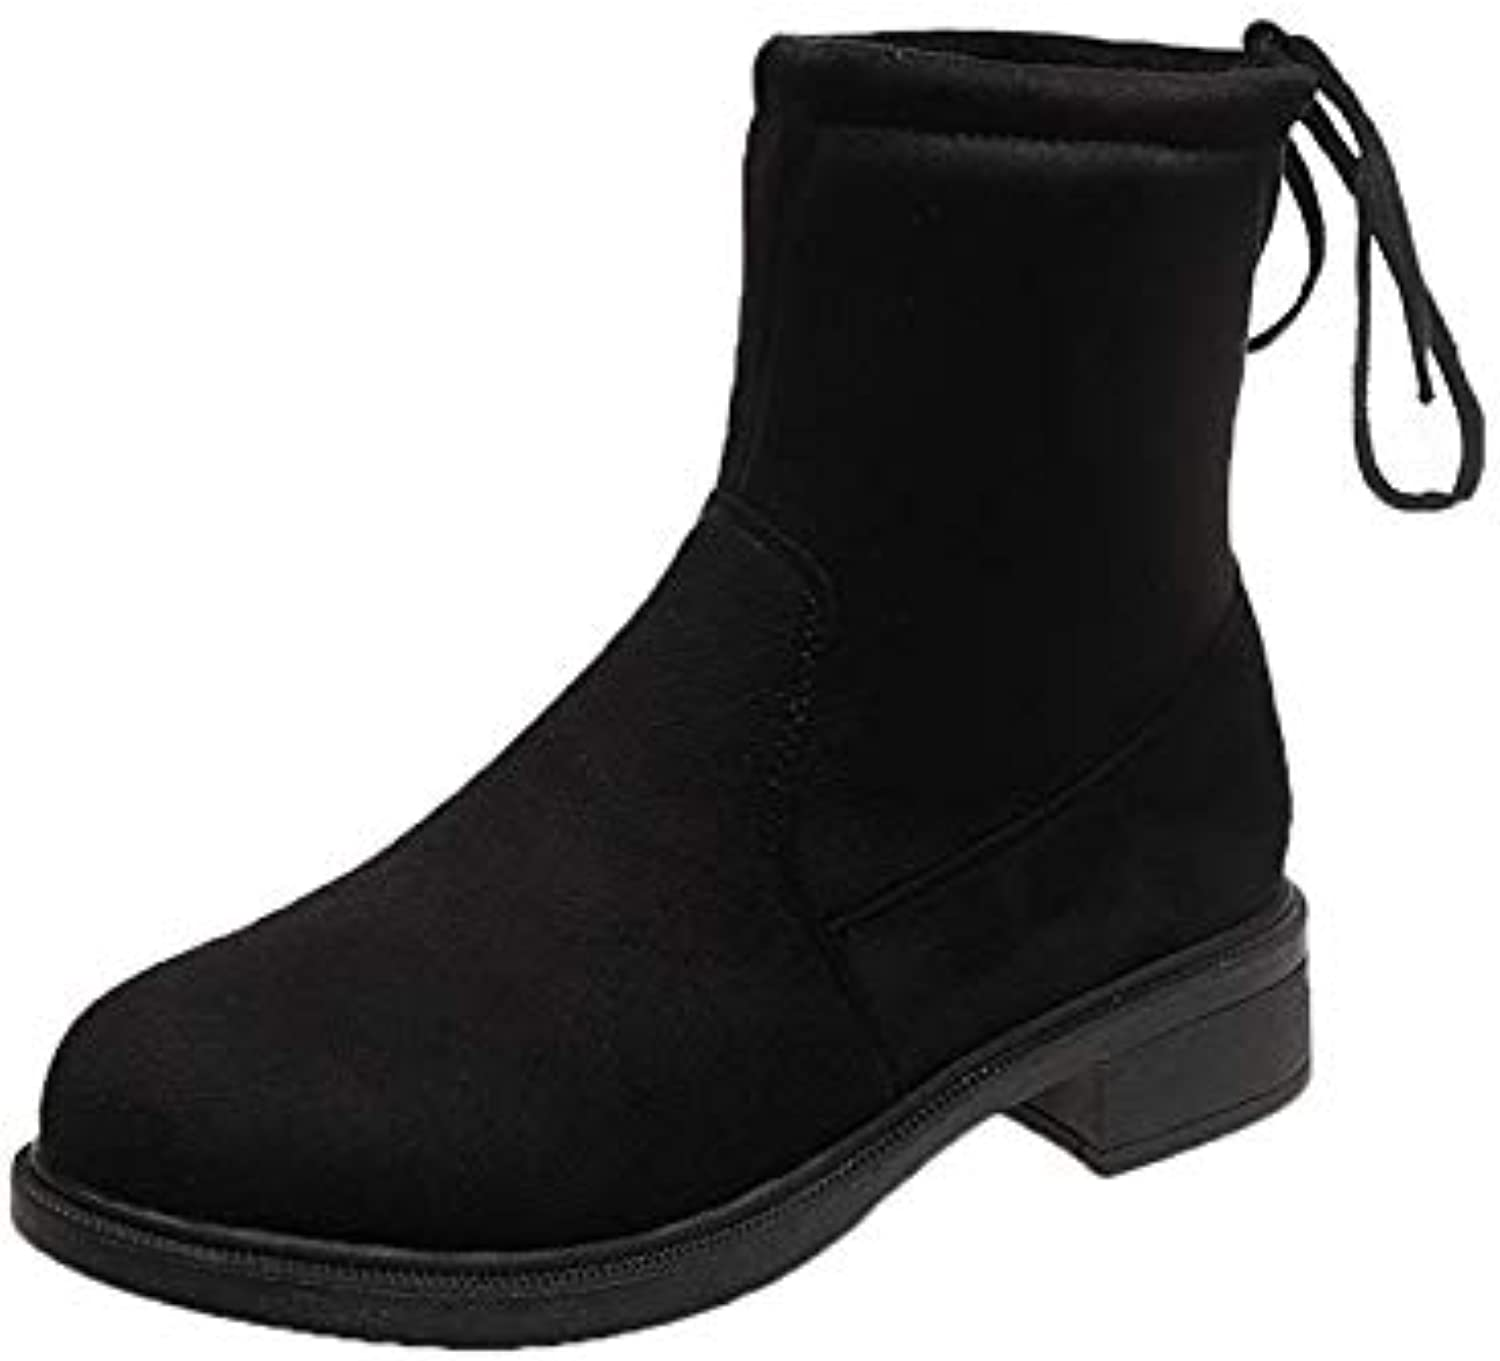 Leigh Suede Flat Boots Classic Slim Snow Boots Ladies Boots - Black